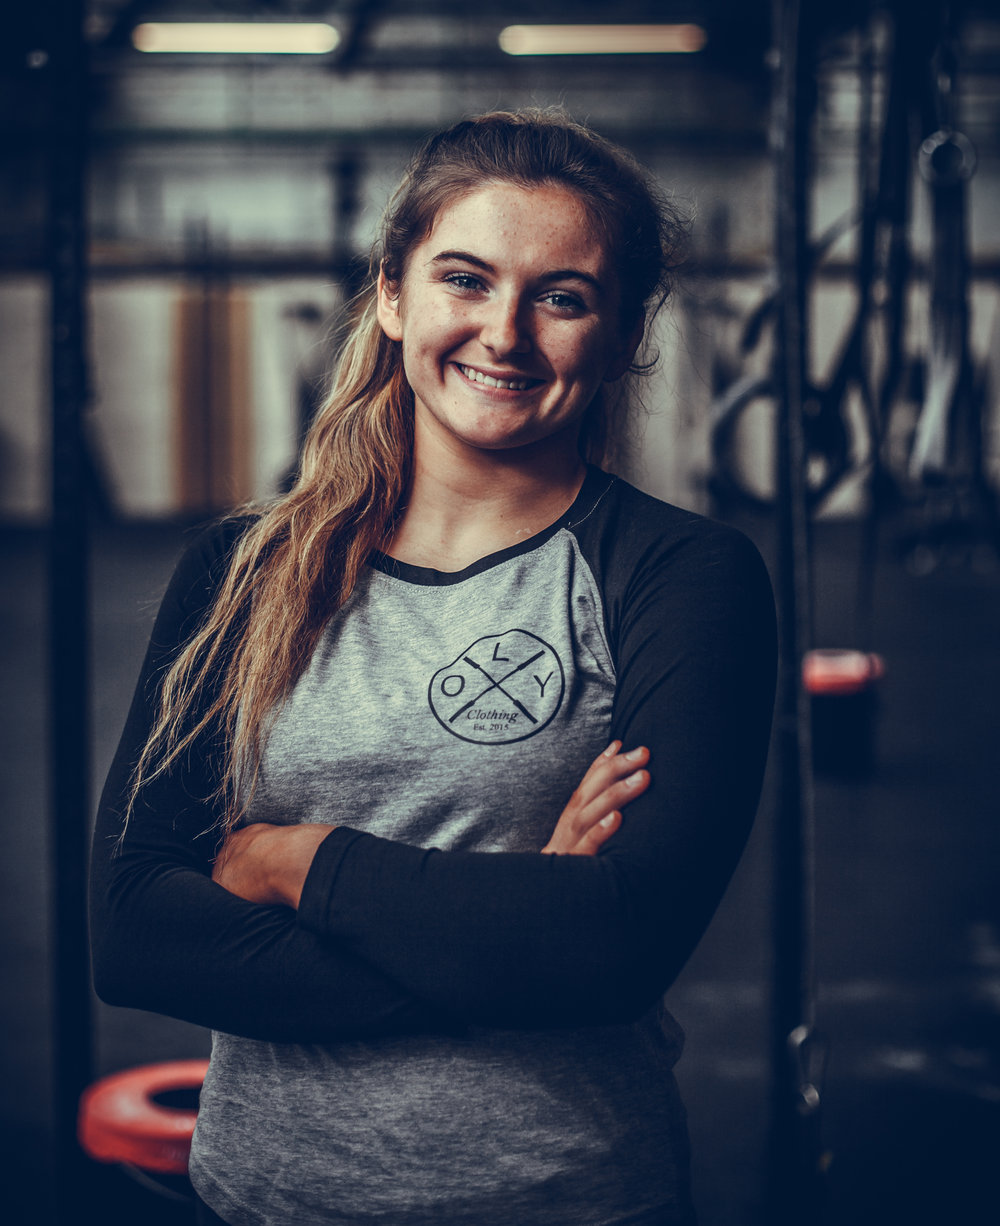 Zöe Kerr - Zoe has represented Ireland internationally in the sport of trampolining. After competing at the World Championships she decided to shift her focus to fitness competitions, notably the Crossfit Games in 2017.-In a year and a half Zoe has solidified herself as one of the best Female Teen athletes in the world. Having finished 35th worldwide, 1st in Central Europe and 1st the UK she narrowly missed going to the CrossFit Games in the 16/17 age category. Zoe has since qualified for the renowned WZA Competition in Miami where she hopes to bring home the goods.